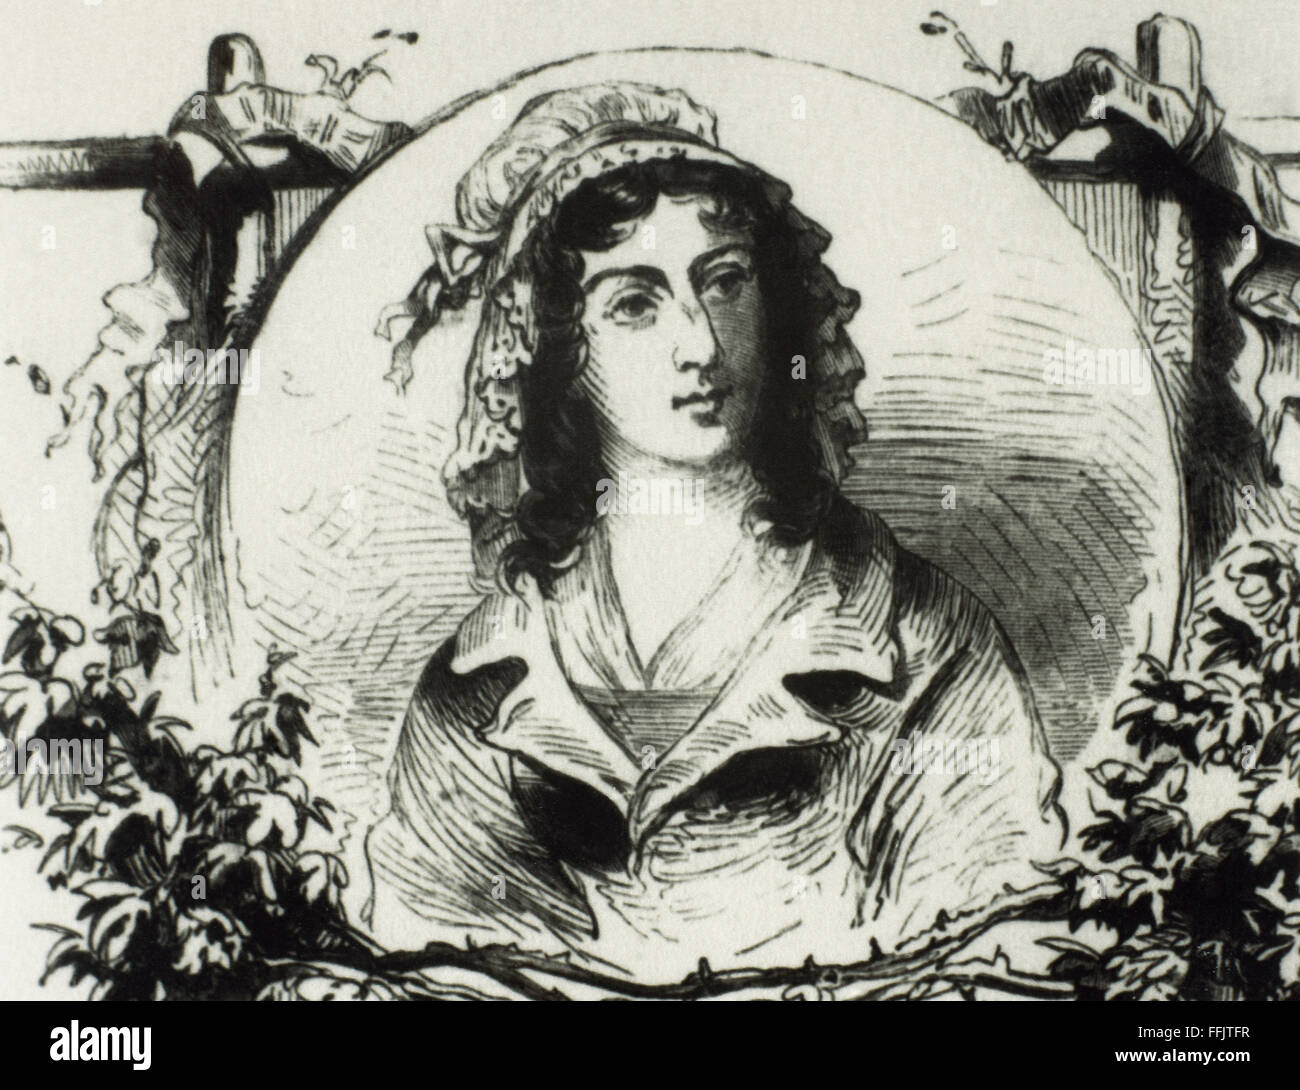 charlotte corday Charlotte corday lyrics: if you hear a step upon / your stair tonight / if you see a shadow in / the candle light / it's only your imagination / leading you astray / see her for a moment / then.